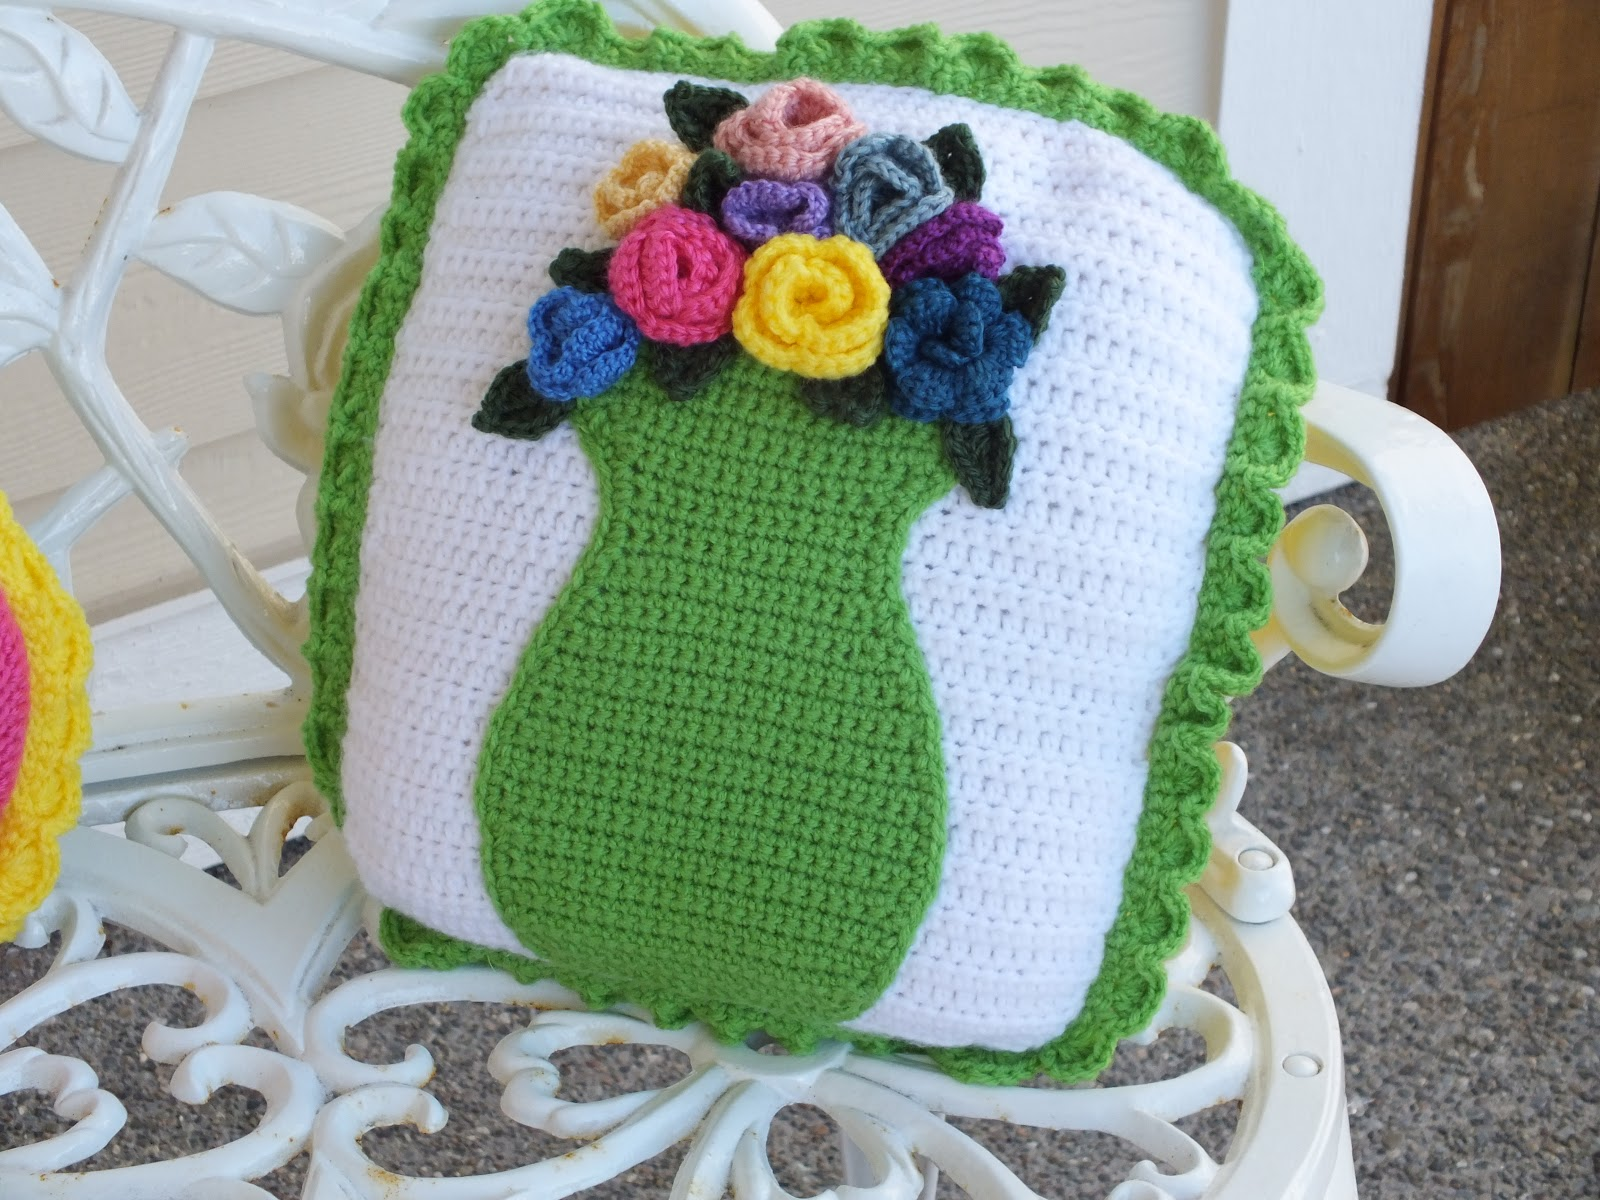 connie 39 s spot crocheting crafting creating summer porch pillow vase applique. Black Bedroom Furniture Sets. Home Design Ideas